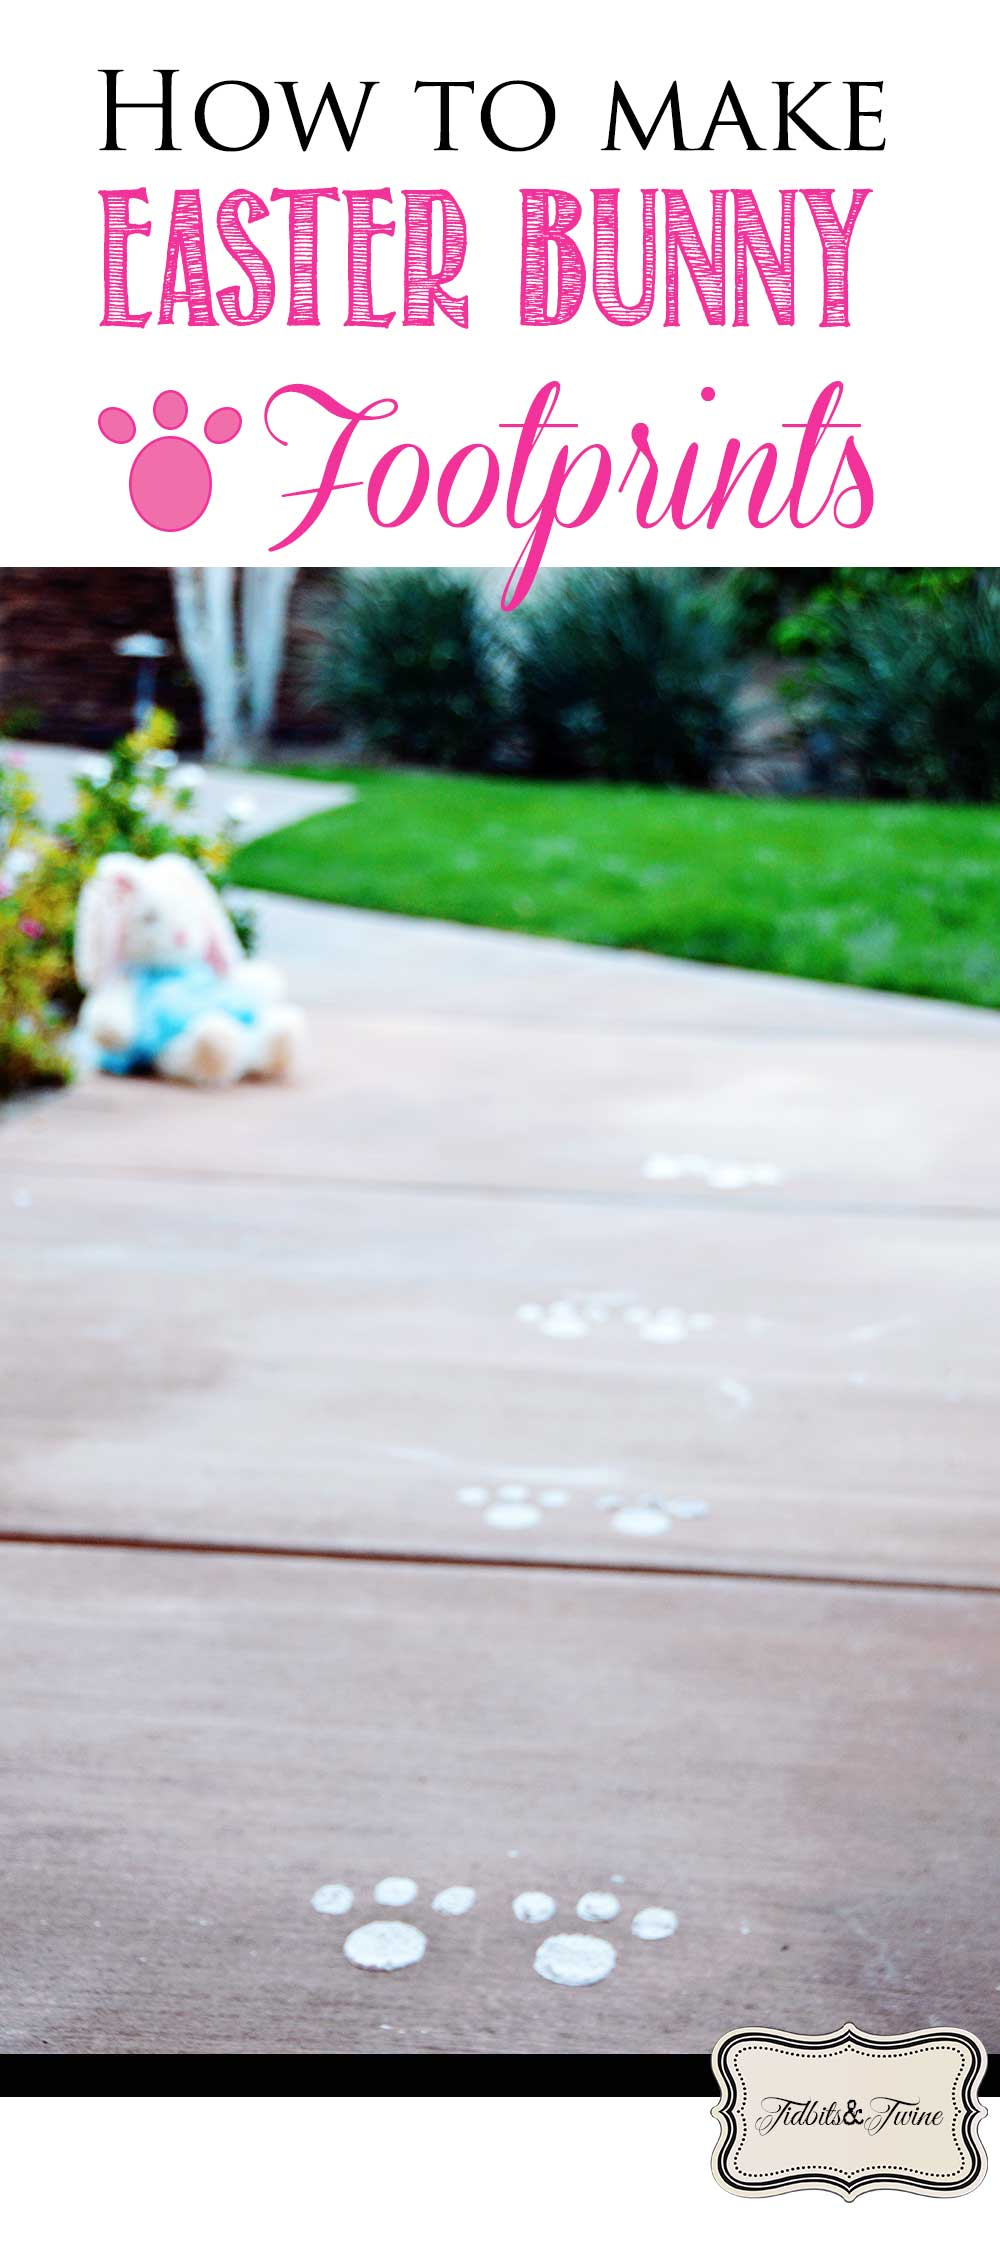 How to Make Easy DIY Easter Bunny Footprints with Flour